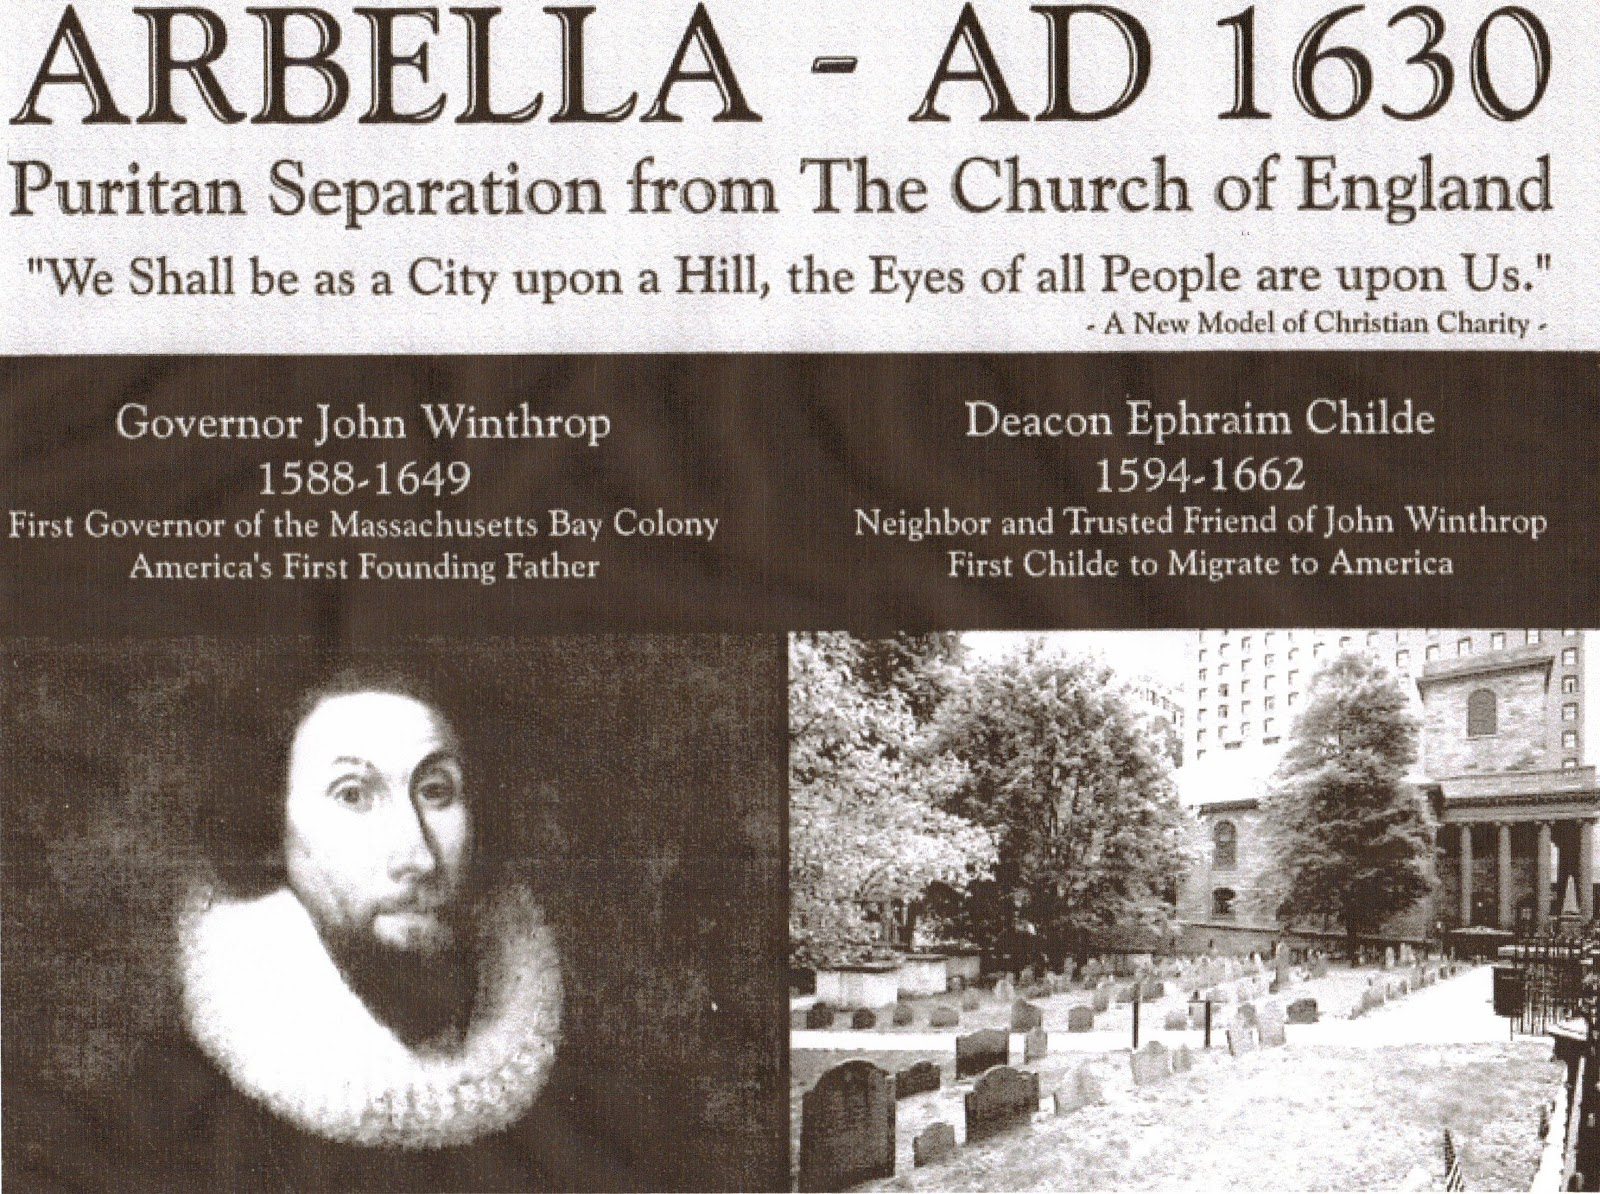 governor john winthrop Future governor john winthrop stated their purpose quite clearly: we shall be as a city upon a hill, the eyes of all people are upon us the arbella was one of eleven ships carrying over a thousand puritans to massachusetts that year.